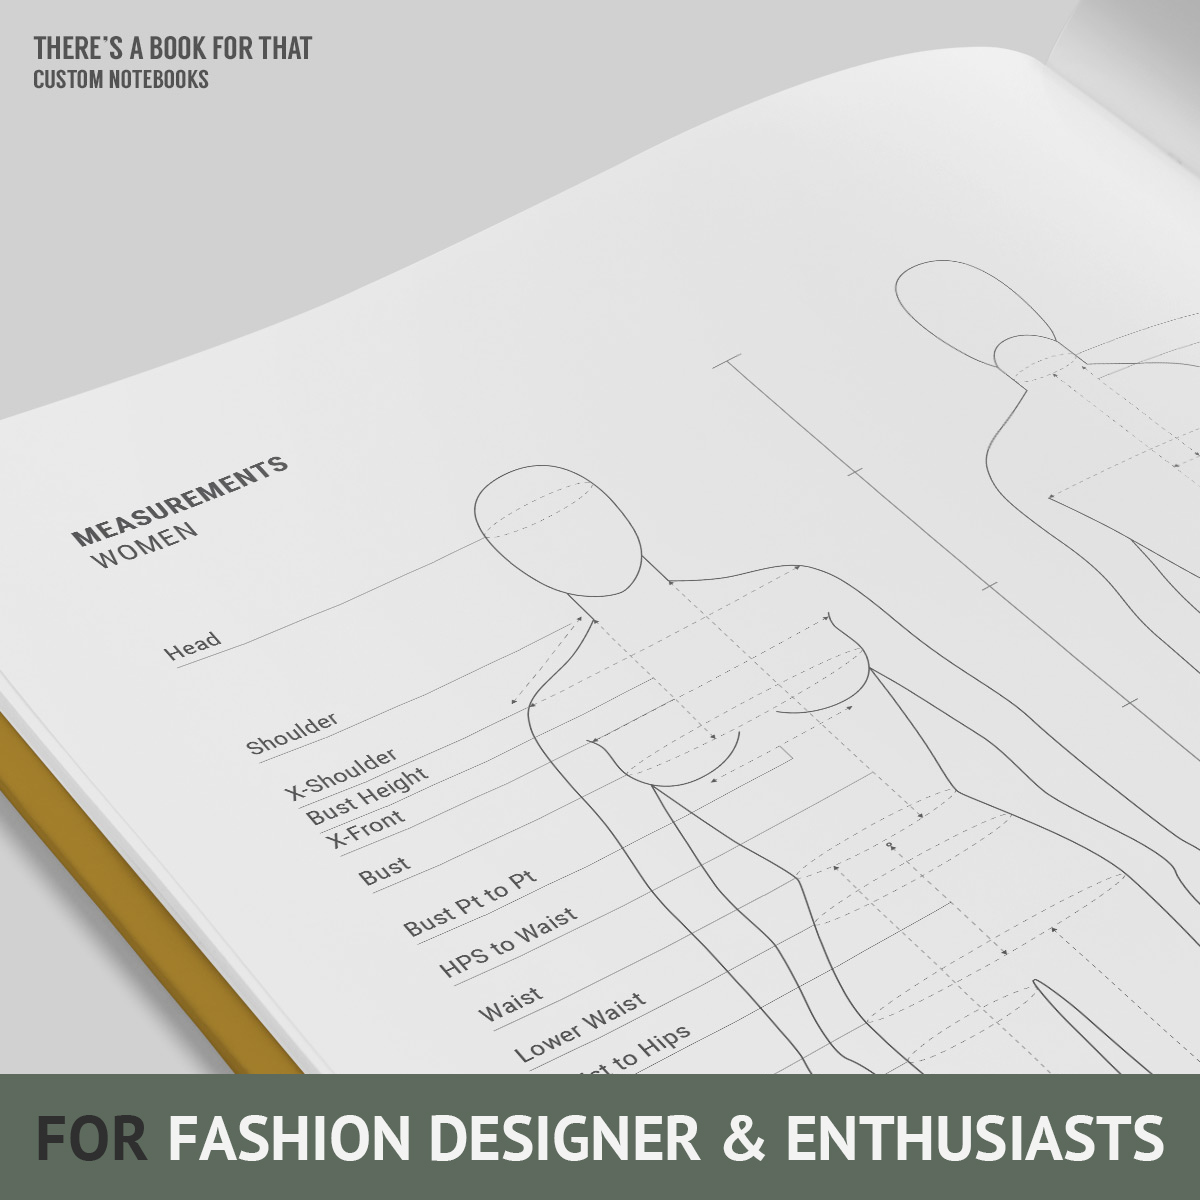 Fashiondesign Notebook There S A Book For That